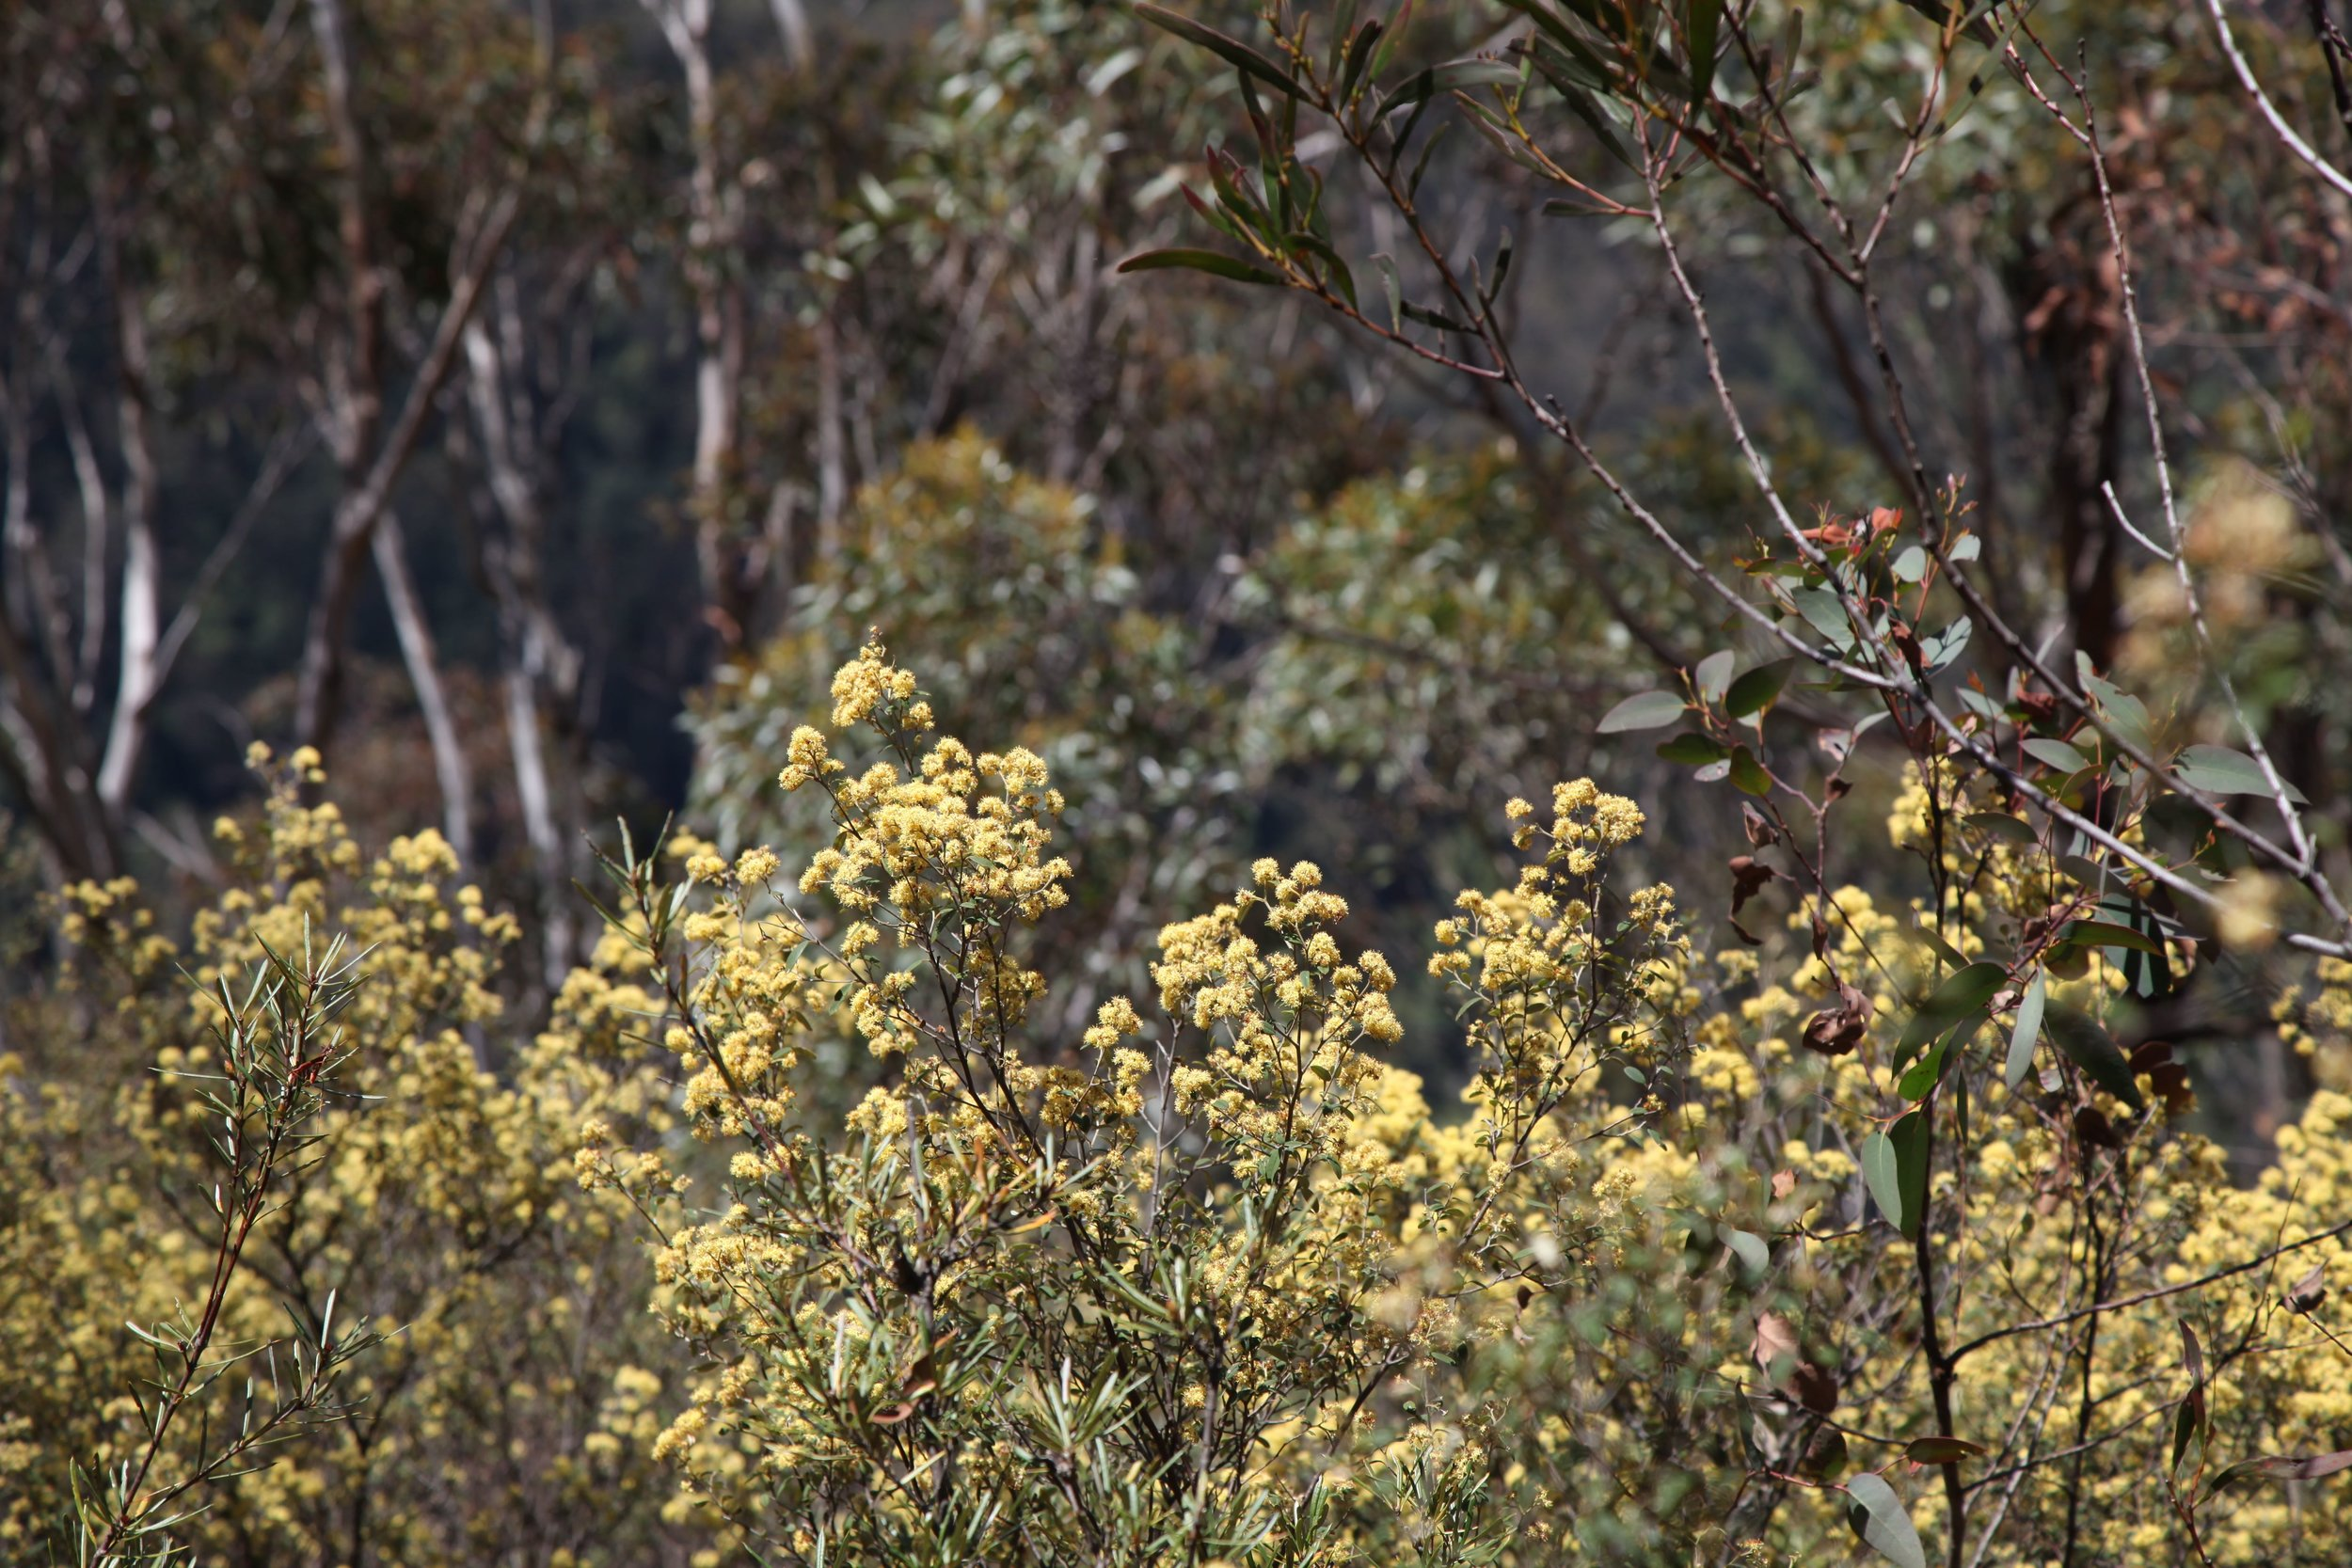 The Cliff Top track runs from Govetts Leap to Evan's Lookout in the Blue Mountains at Blackheath.